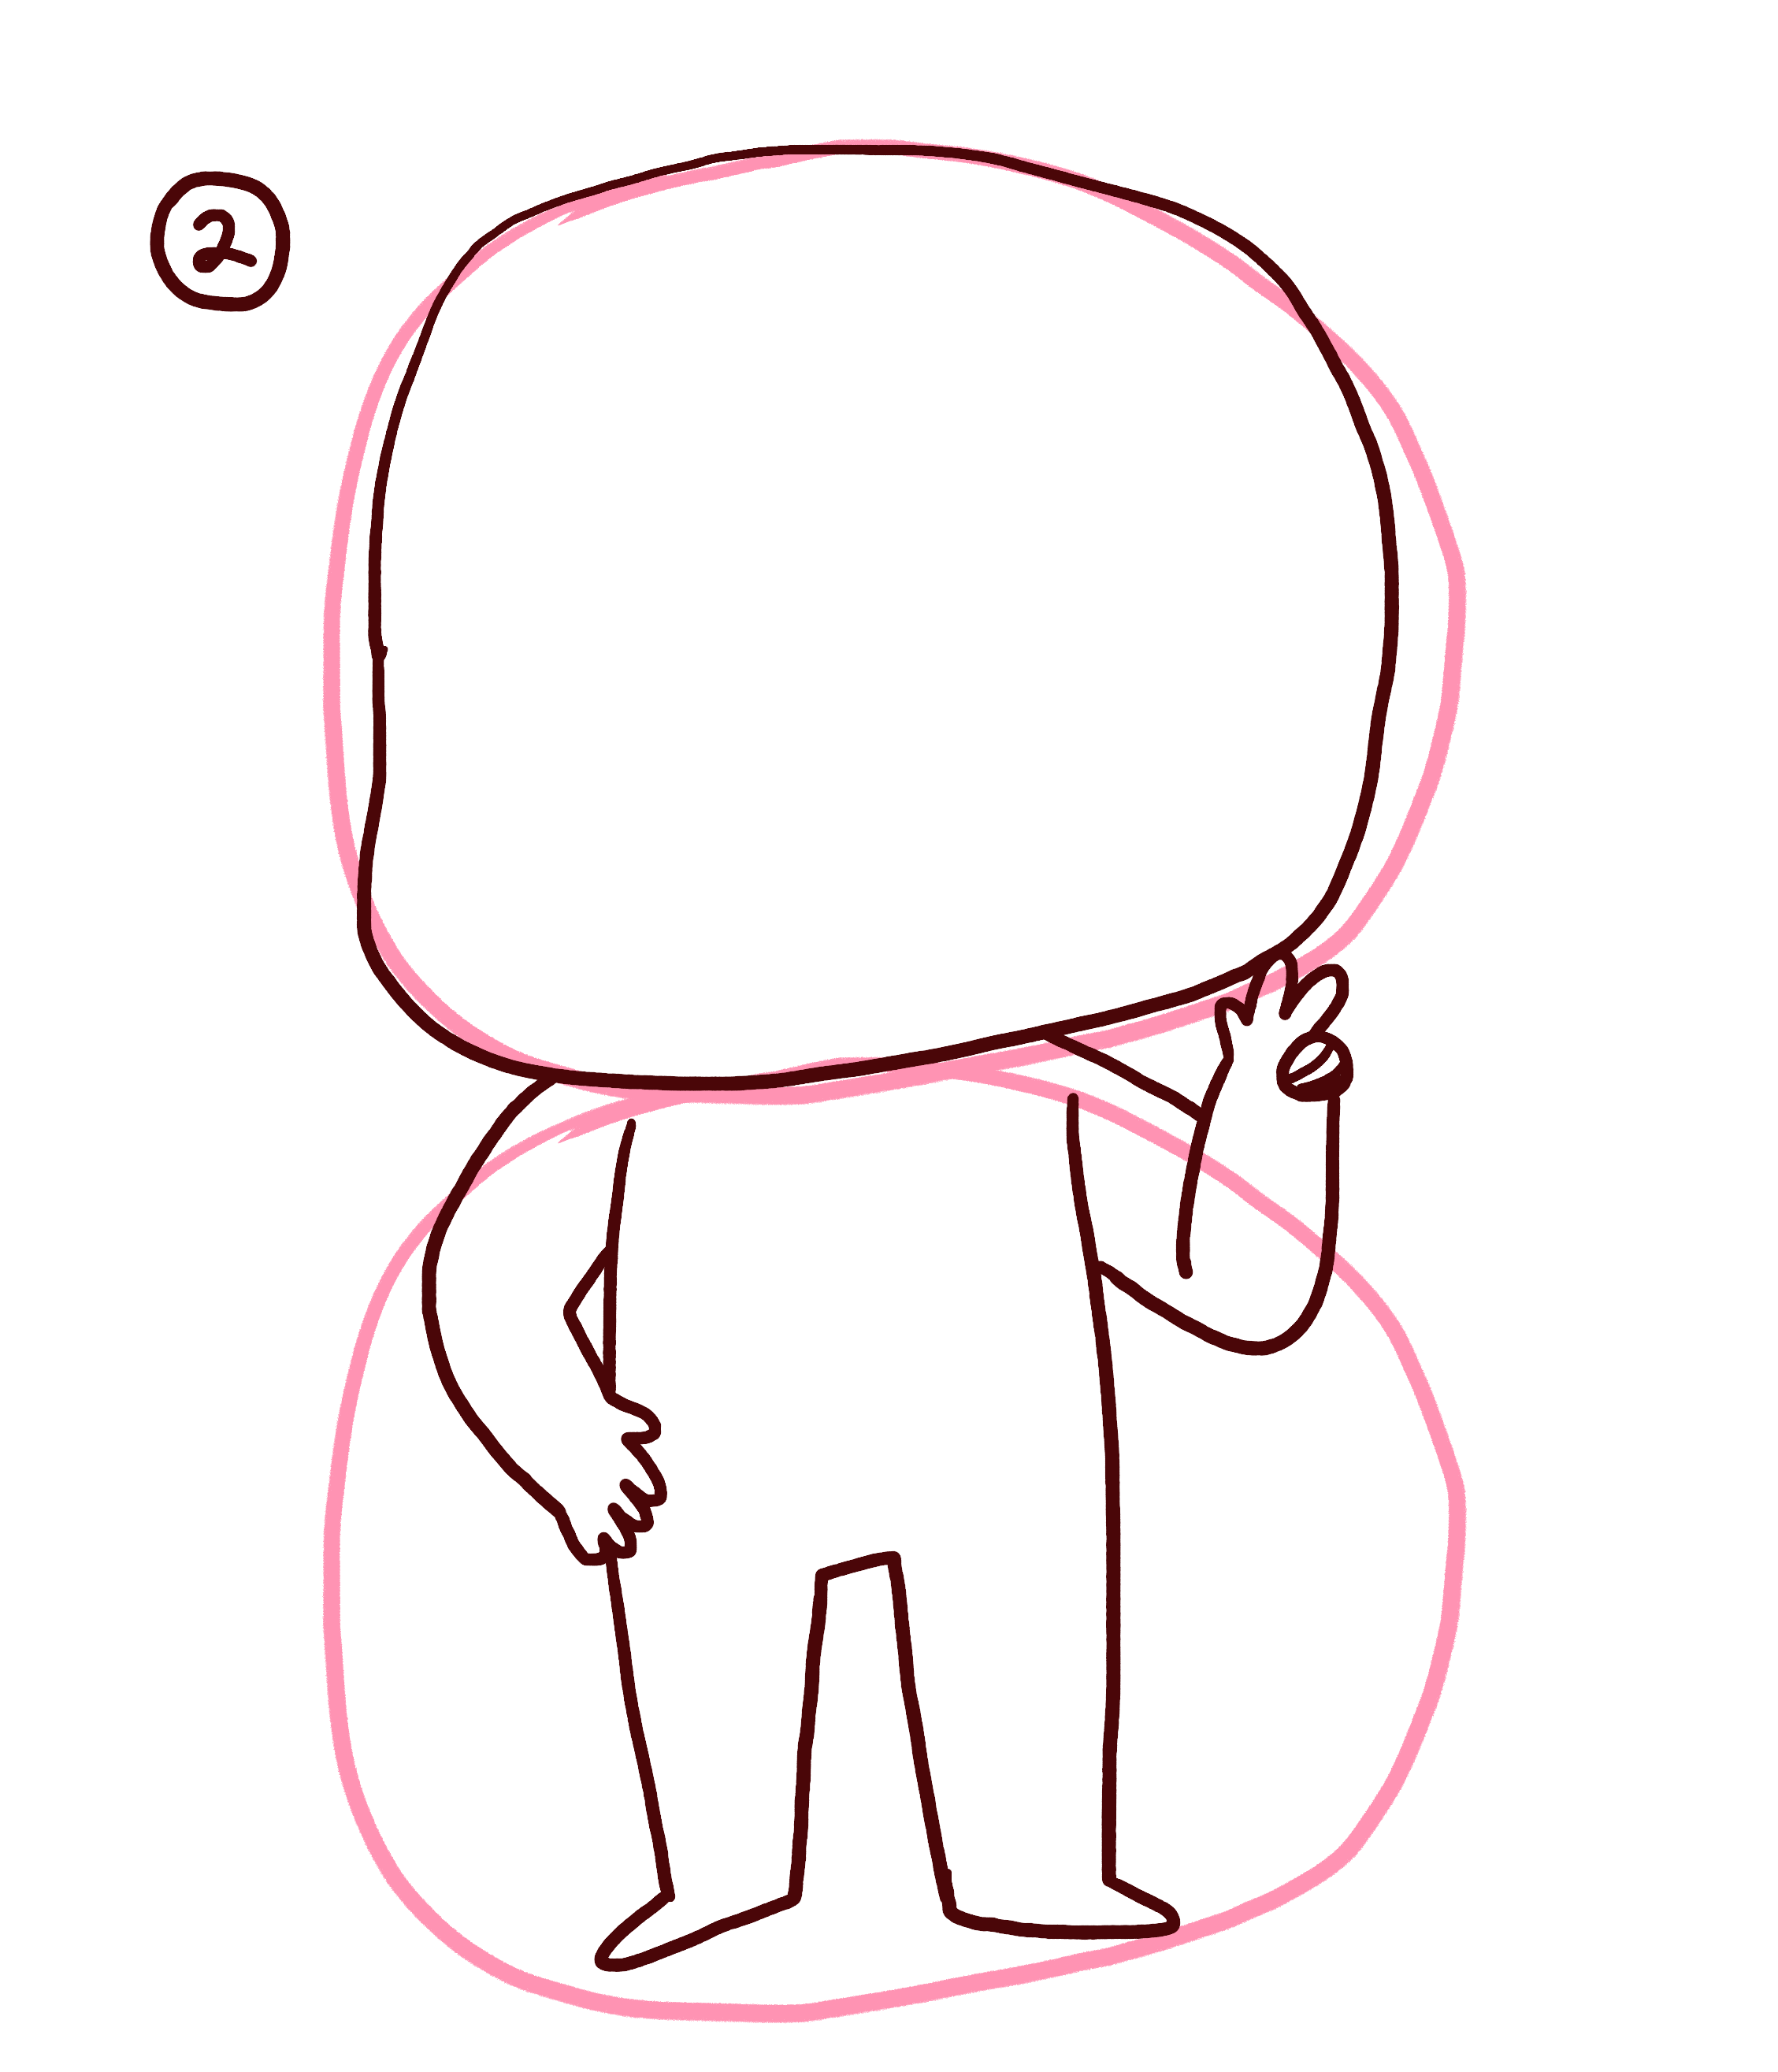 Draw the head and body